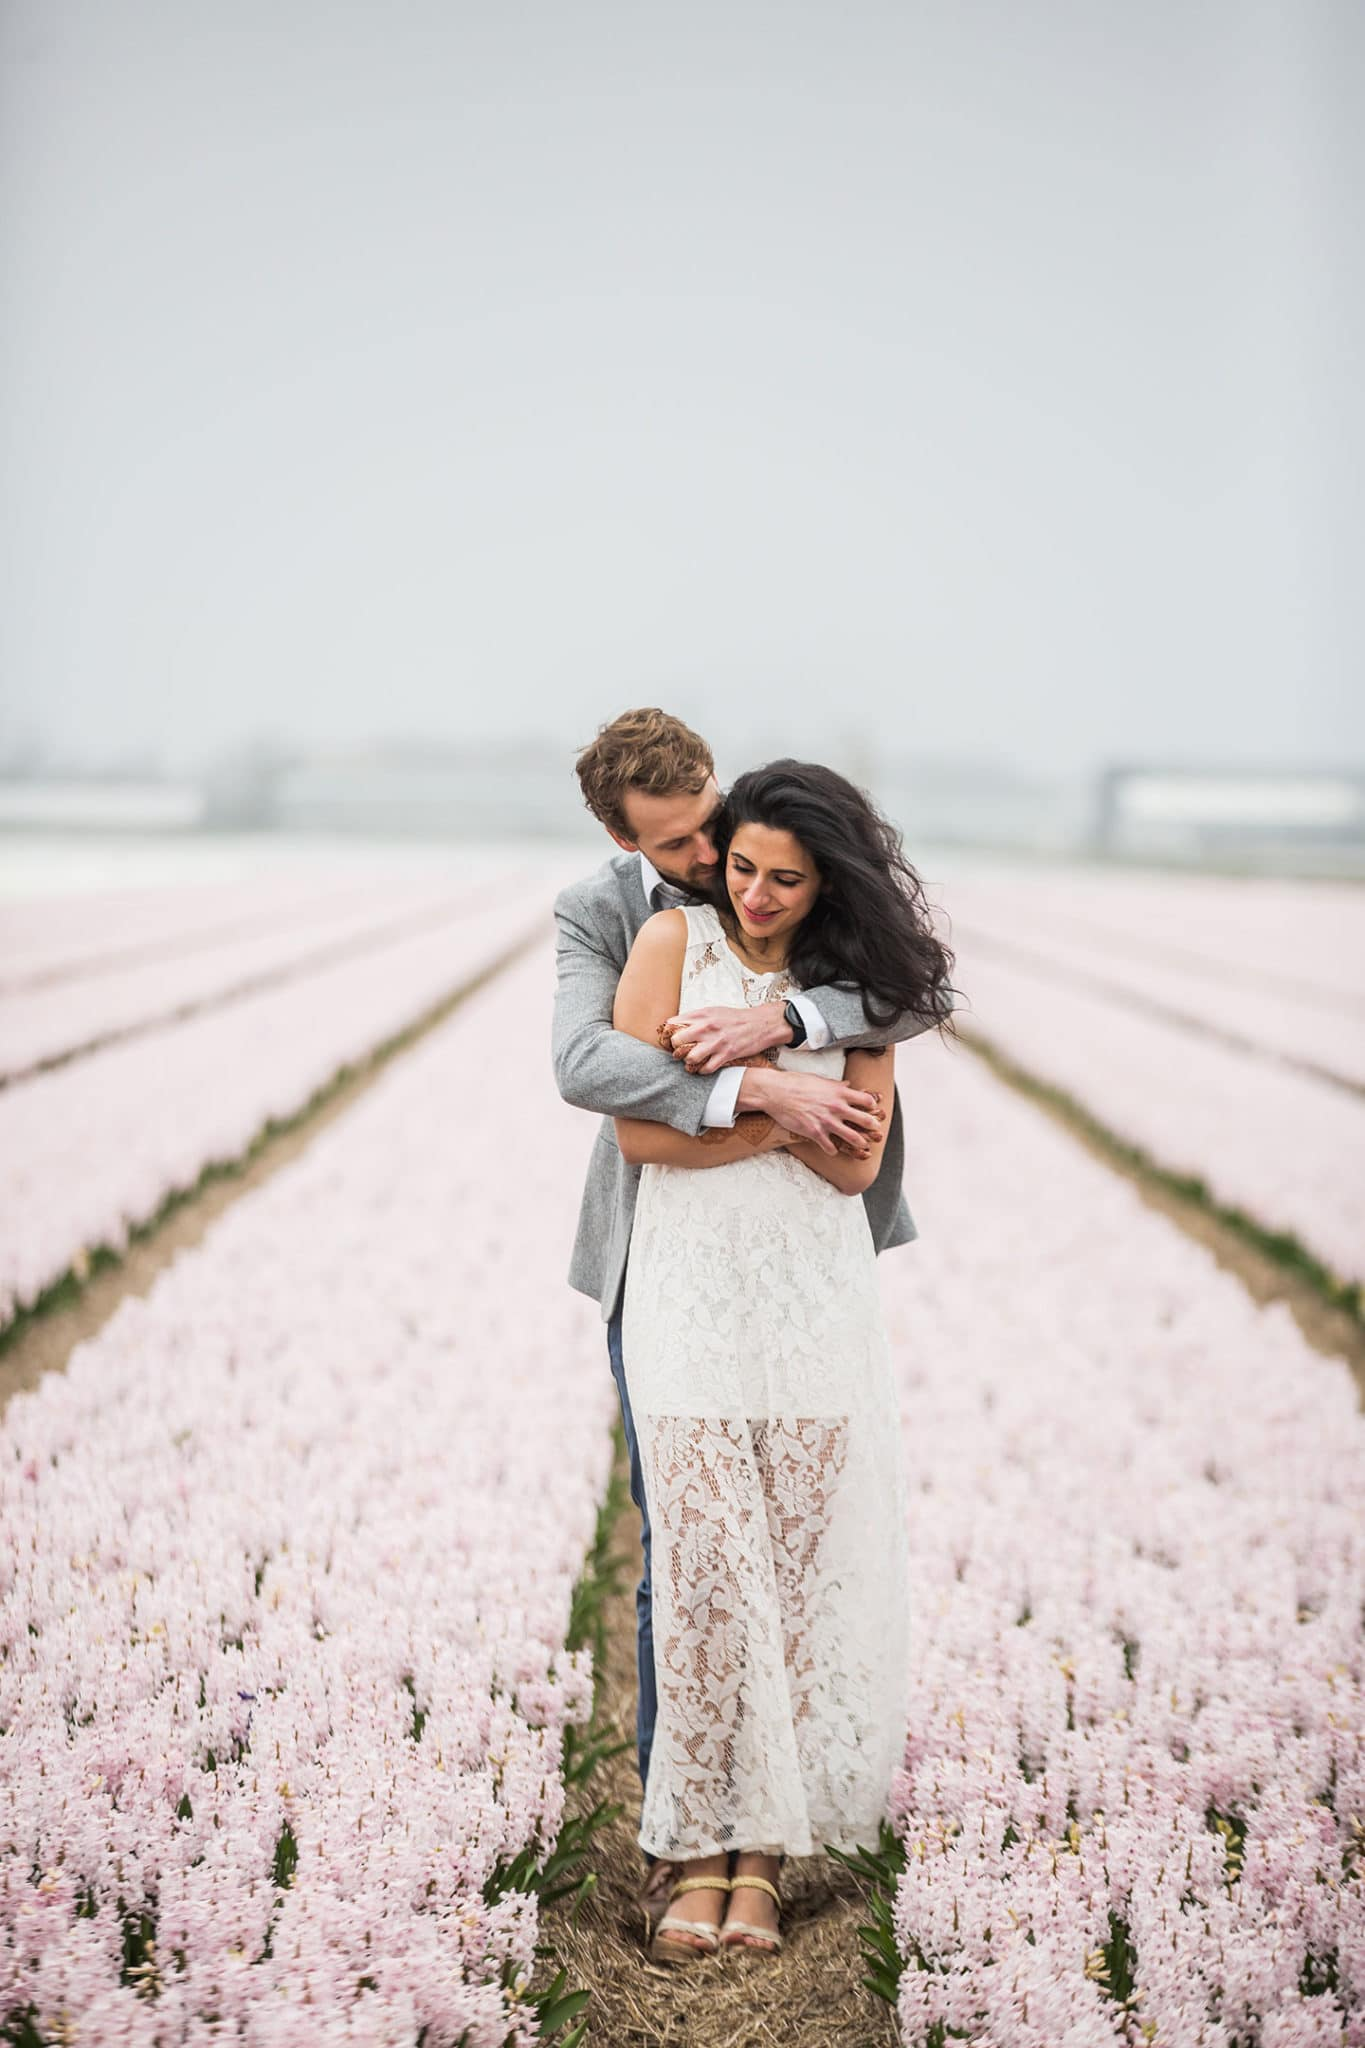 Keukenhof flower gardens prewedding photographer